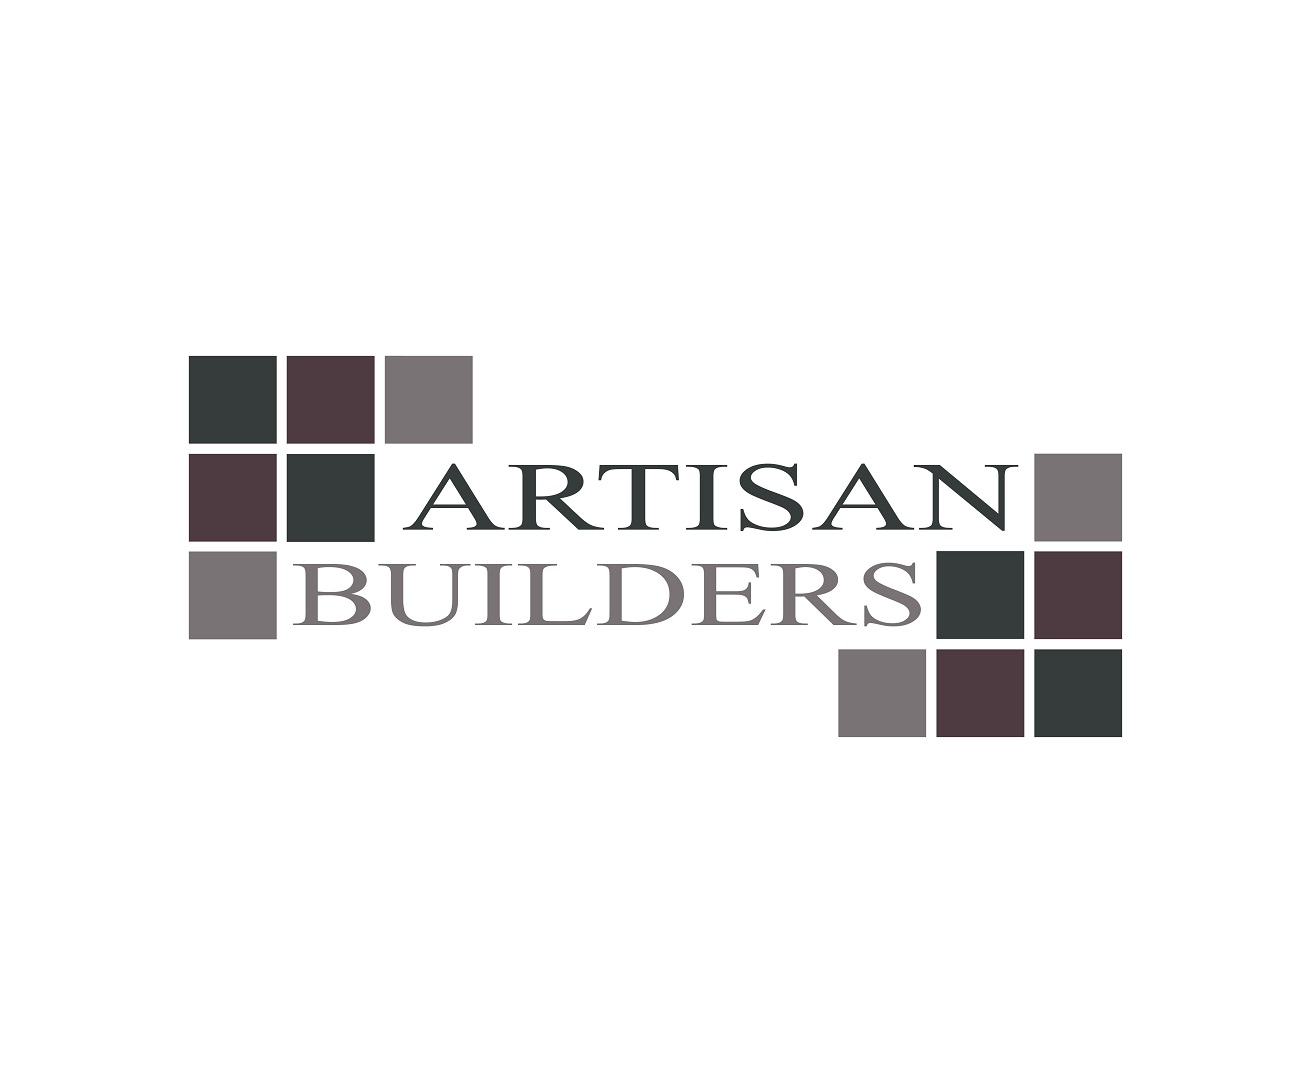 Logo Design by jhunzkie24 - Entry No. 190 in the Logo Design Contest Captivating Logo Design for Artisan Builders.